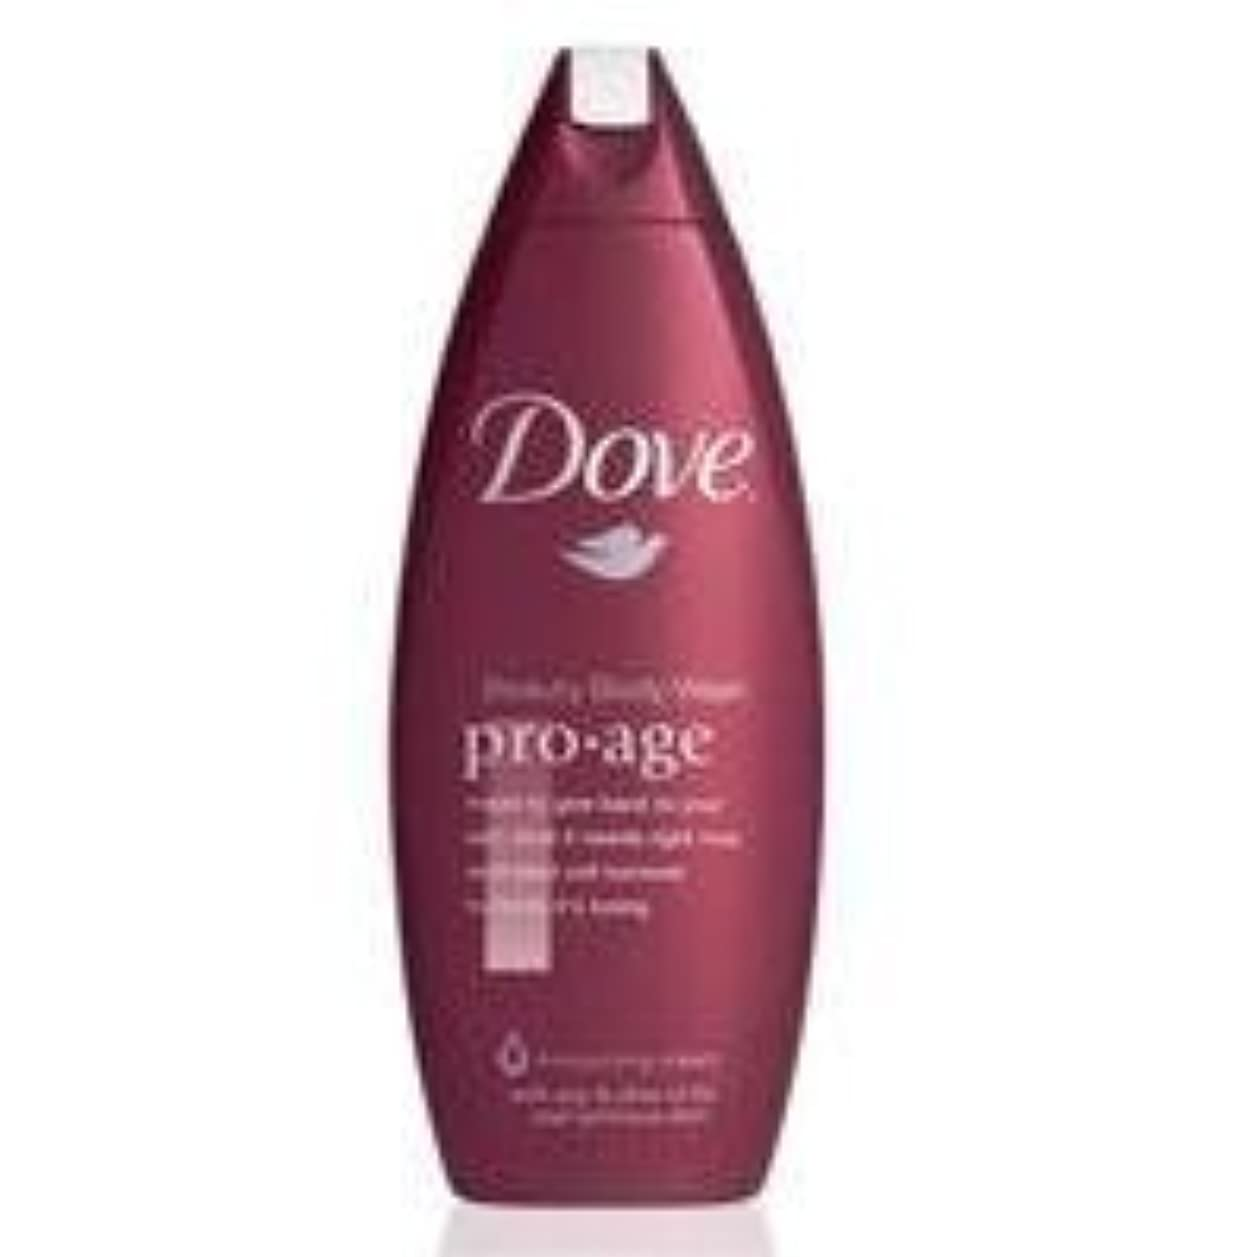 閉じるコイン島Dove Pro-Age Beauty Care Body Wash by Dove [並行輸入品]